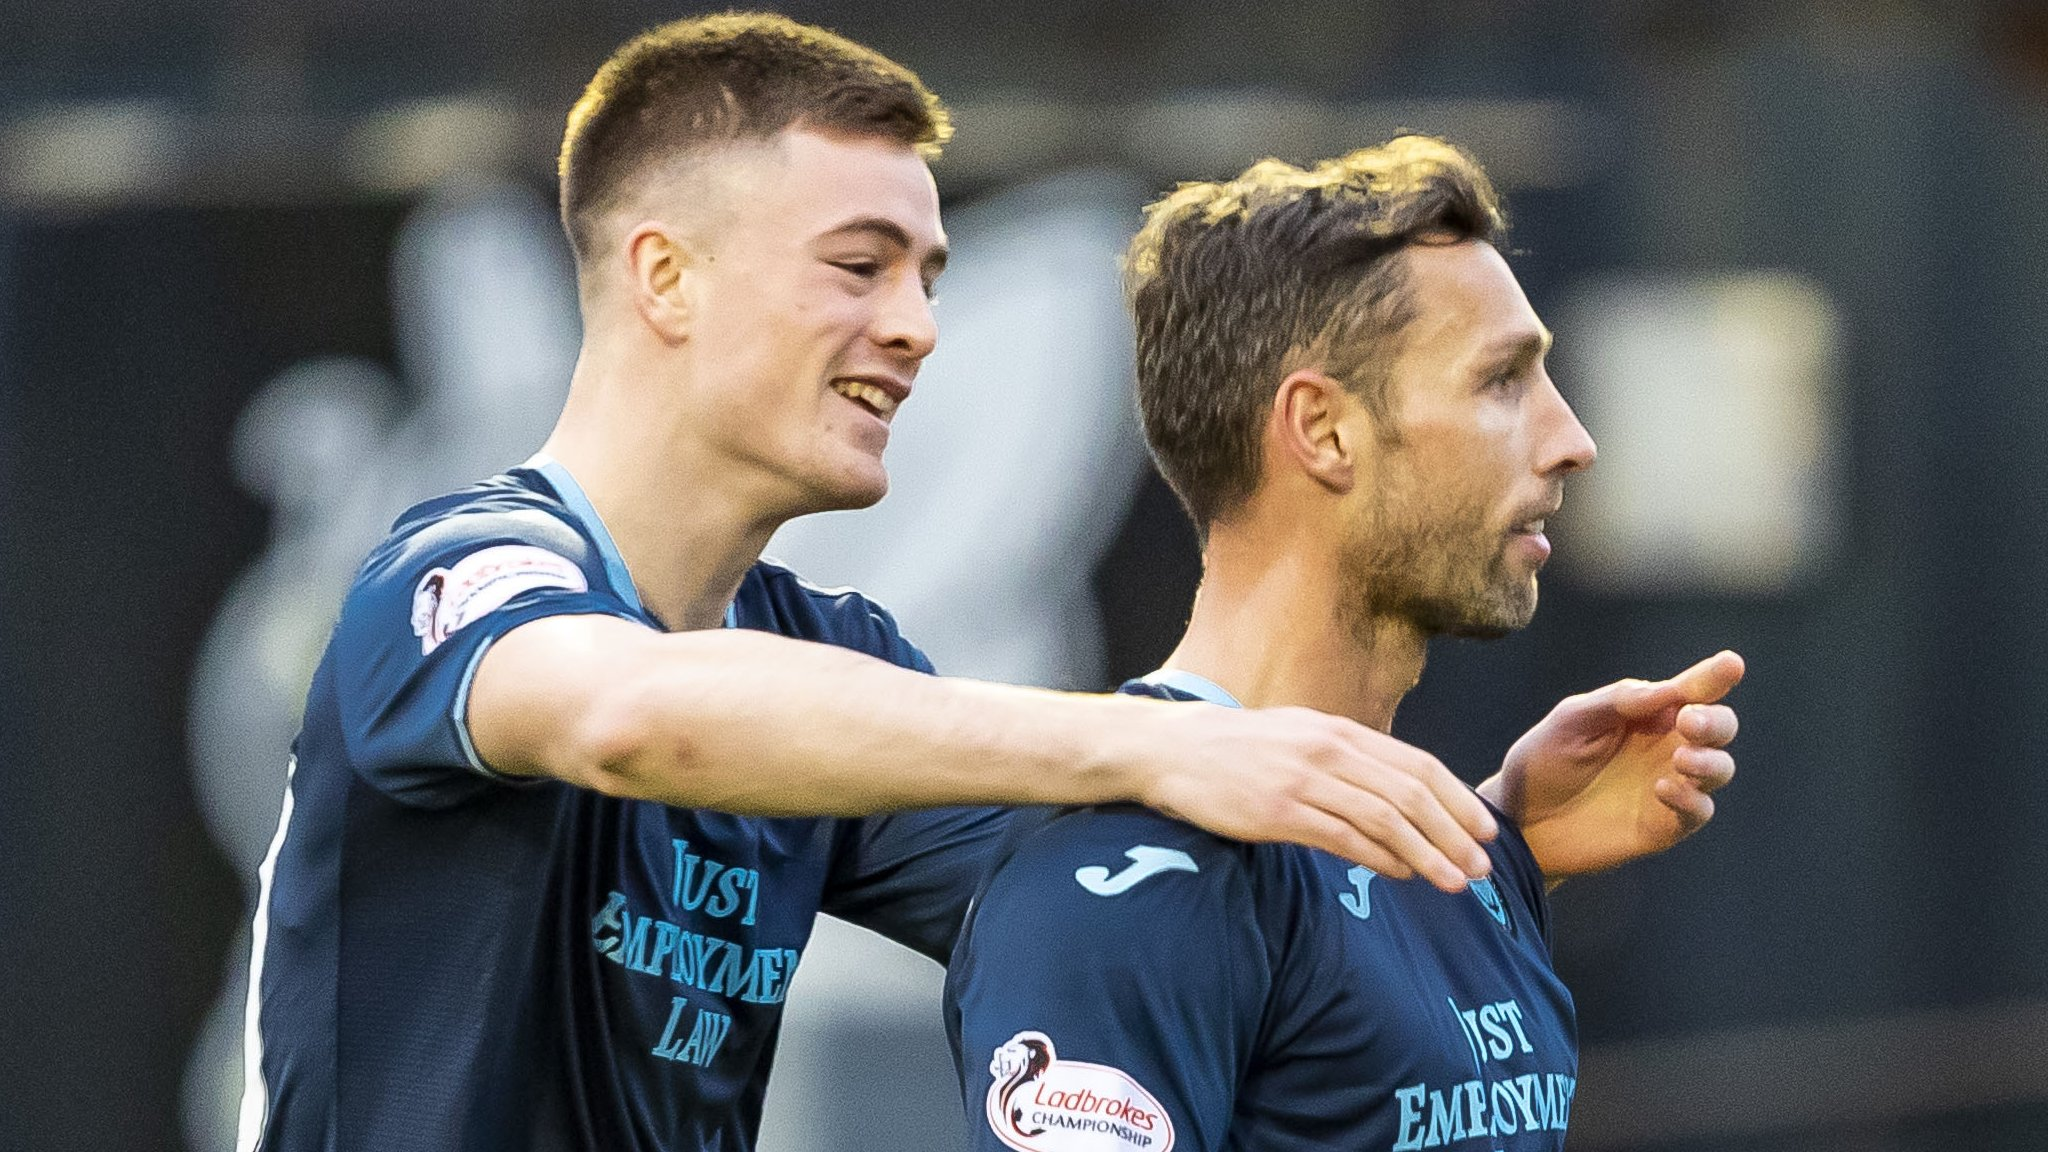 Alloa 0-2 Partick Thistle: Scott McDonald scores as Jags move out of bottom two